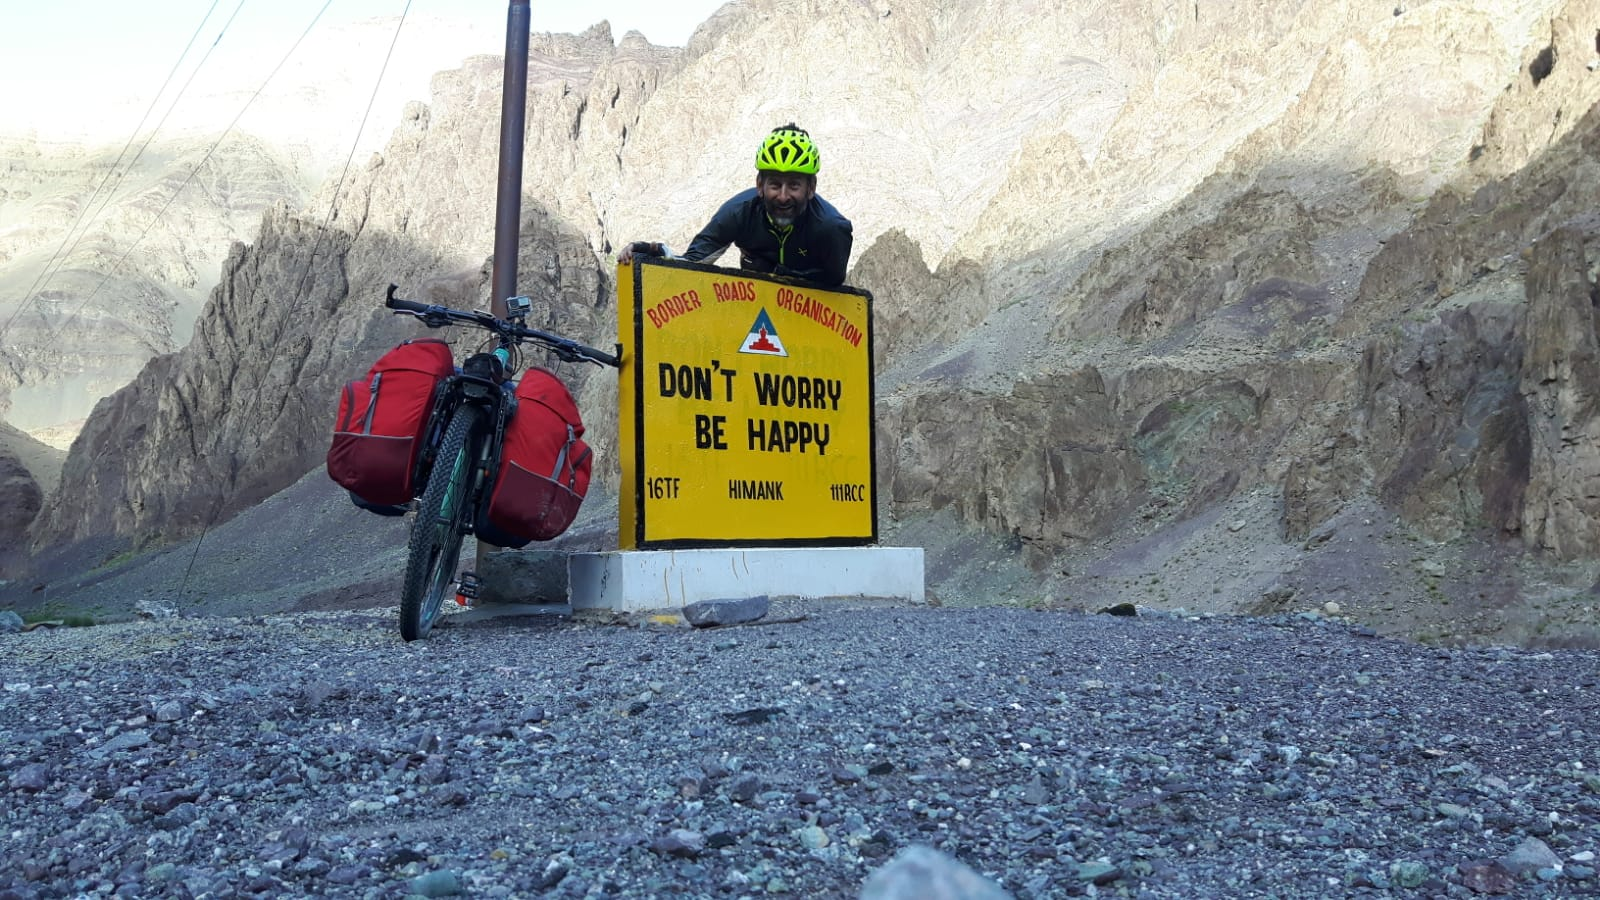 Photo of In bici sulla Manali-Leh, la route 66 dell'India